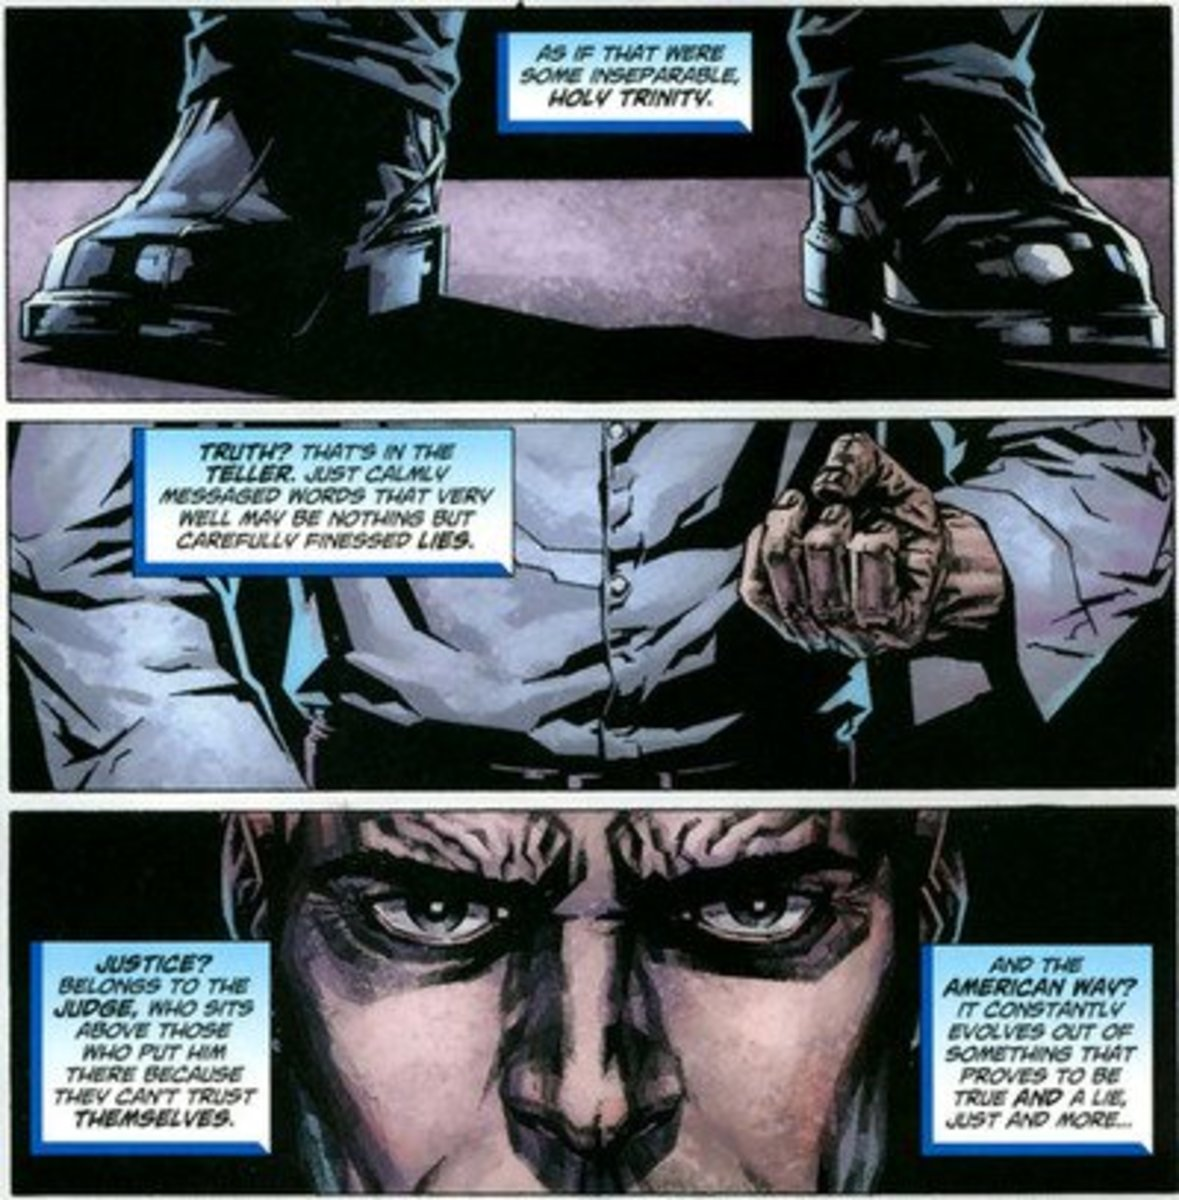 Lex mocks Truth, Justice and the American Way